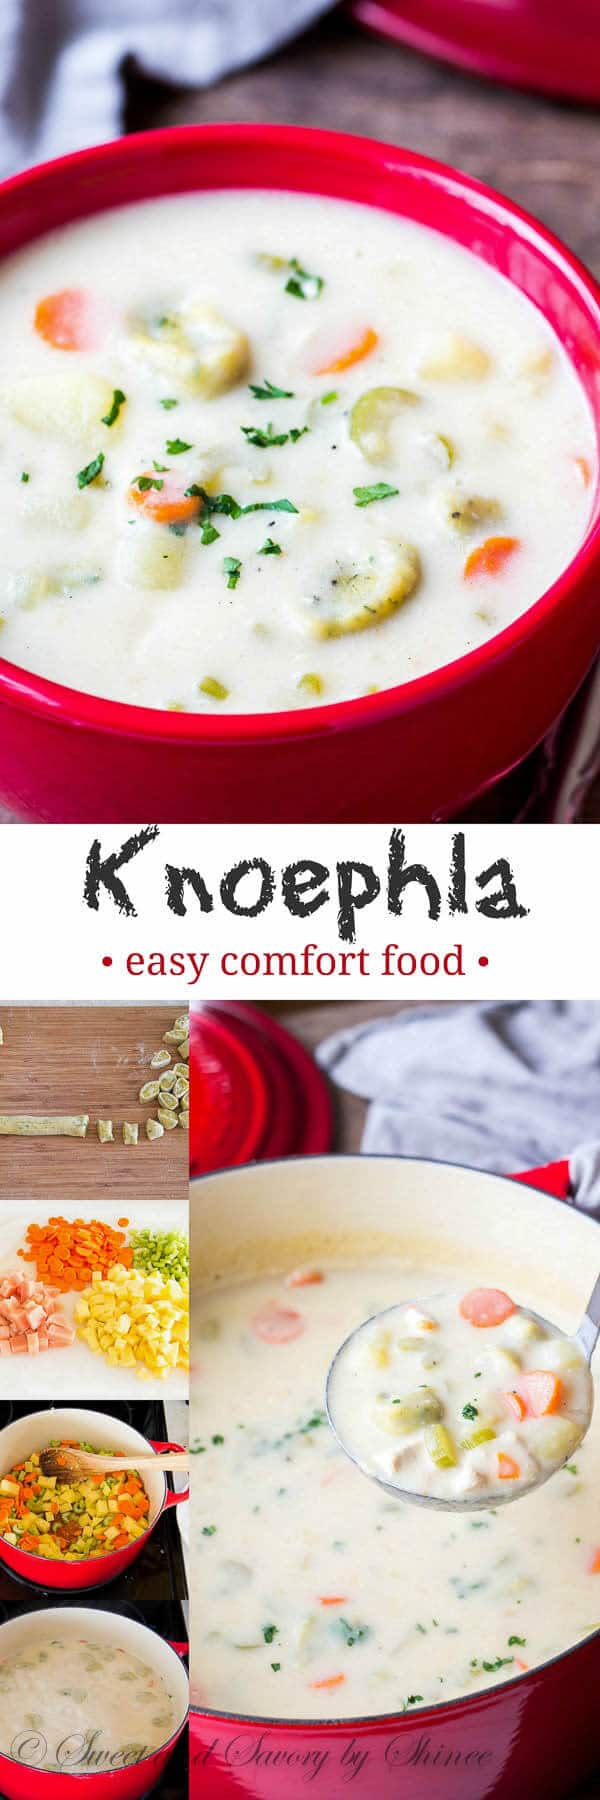 Warm your soul and body with this hearty knoephla soup, loaded with chewy herb-infused knoephla dumplings. Step-by-step photos are included!